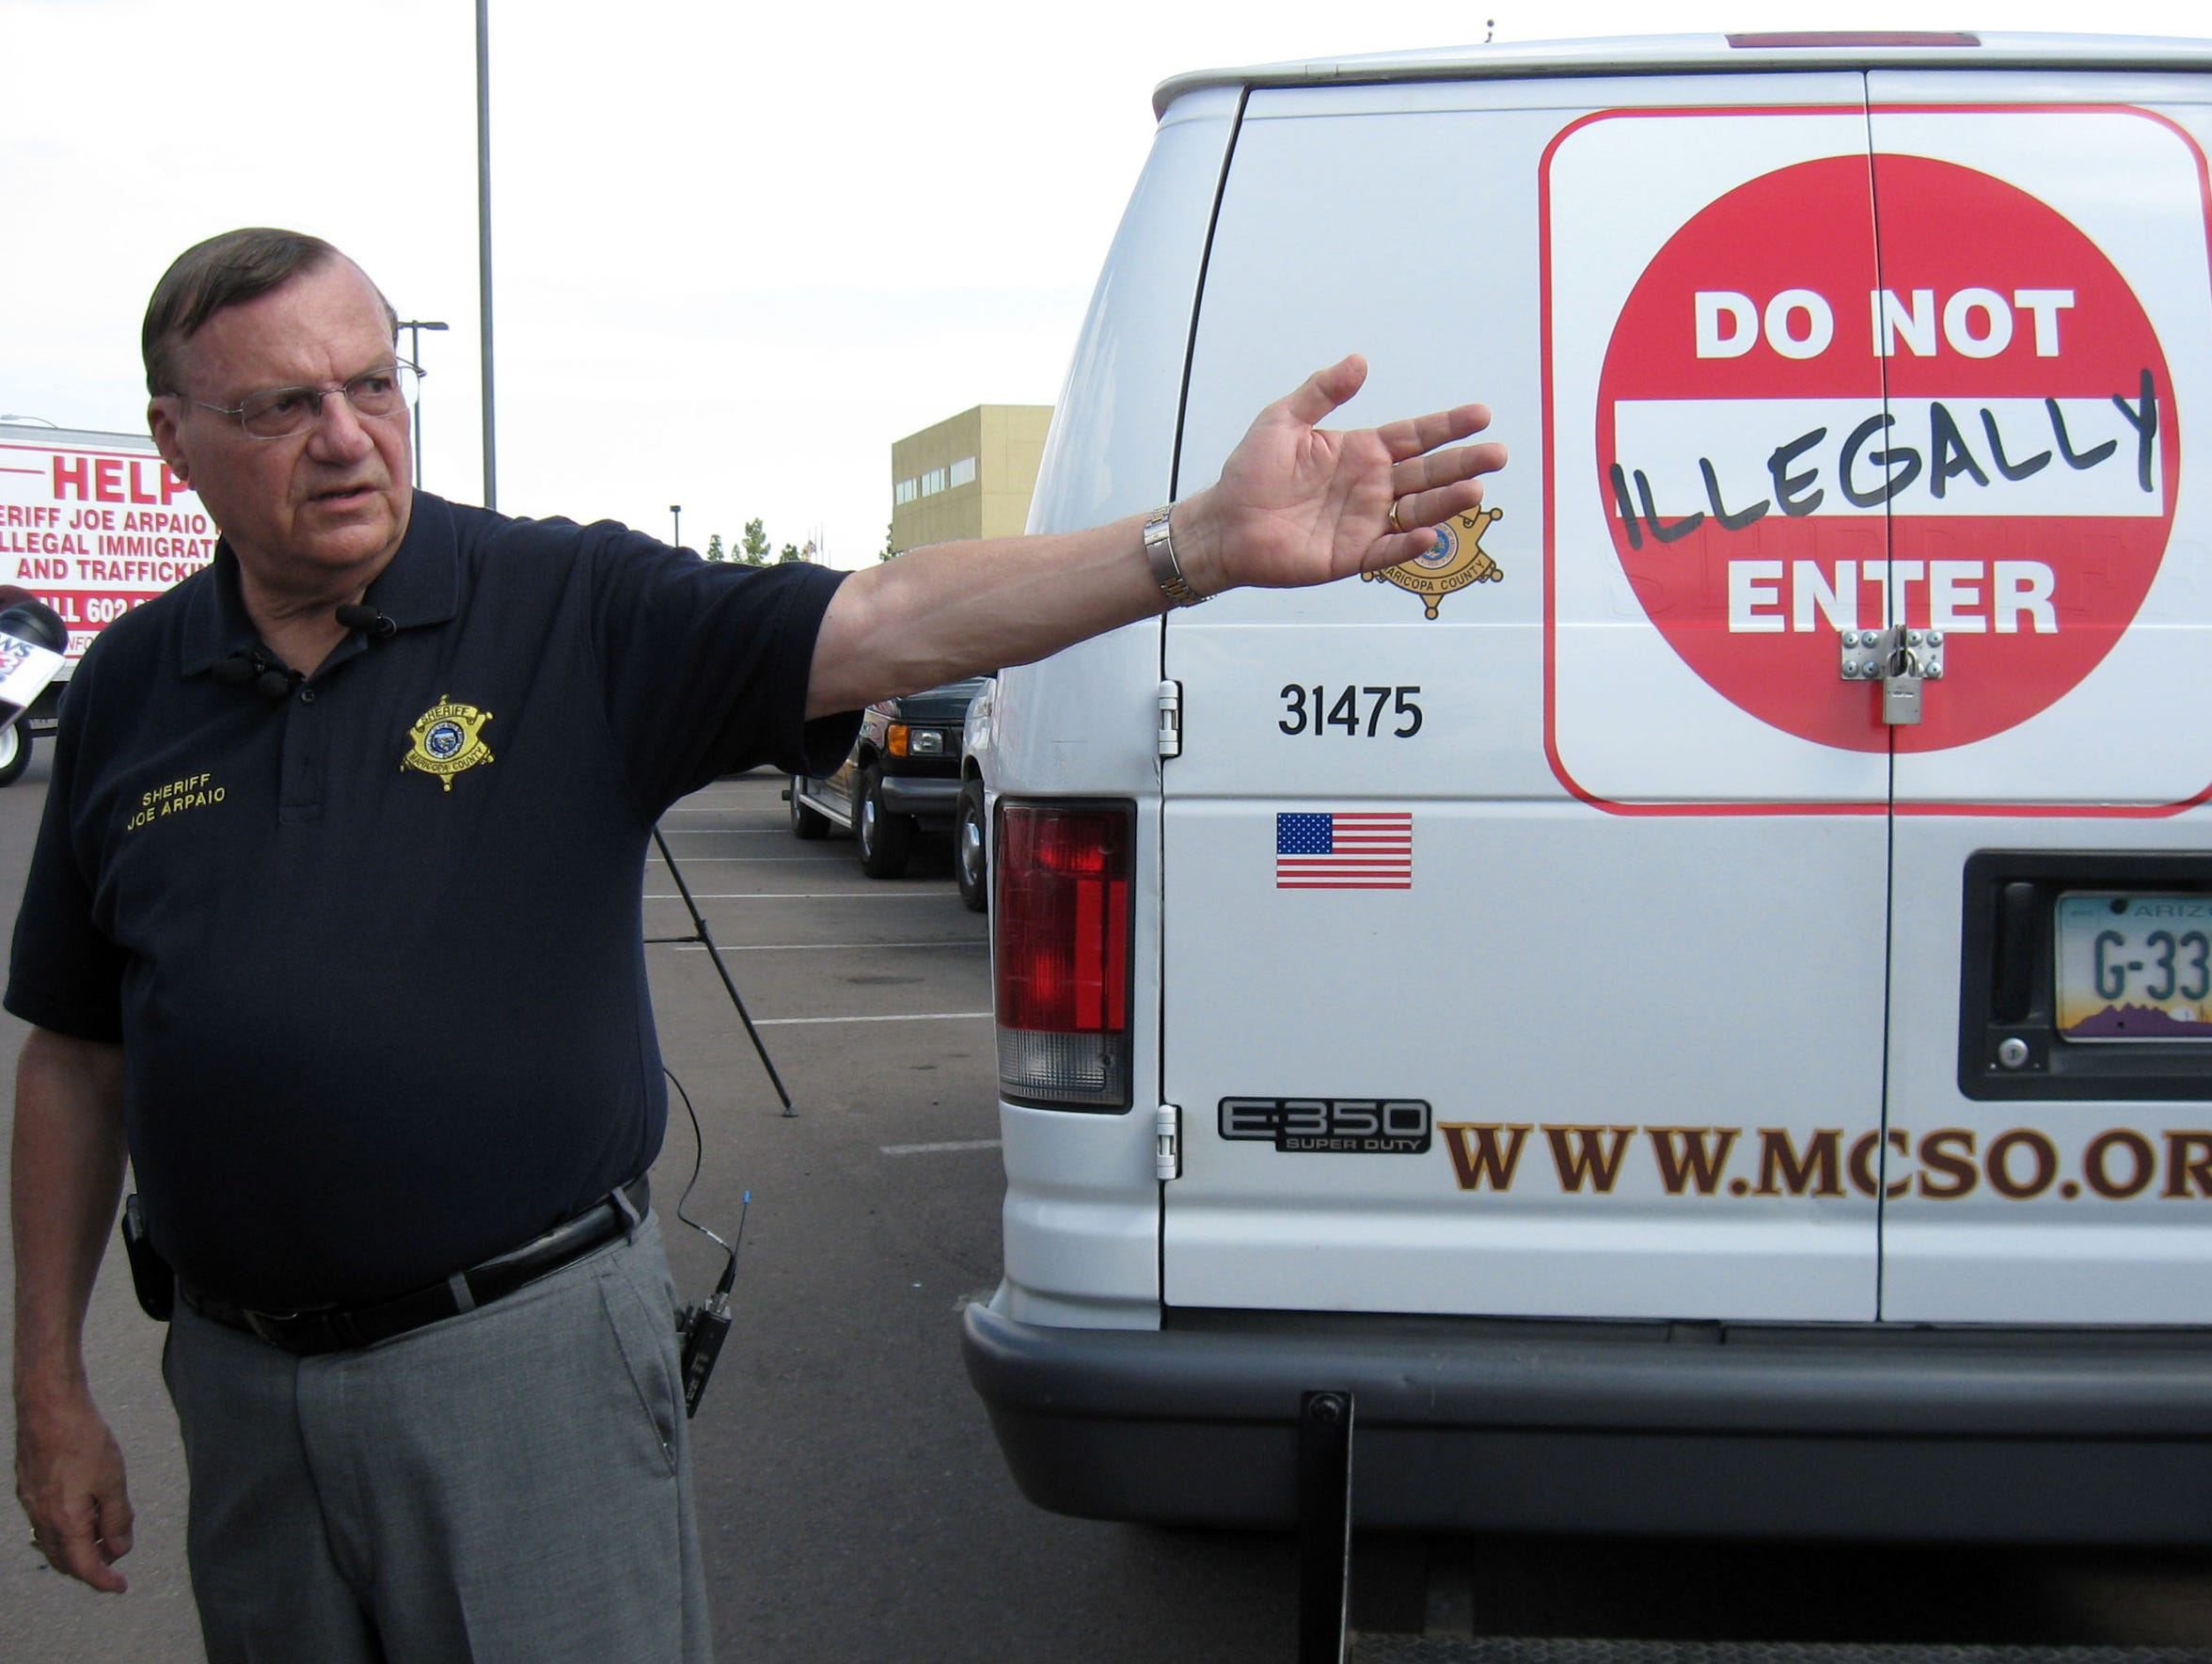 Arpaio shows off one of several vehicles advertising